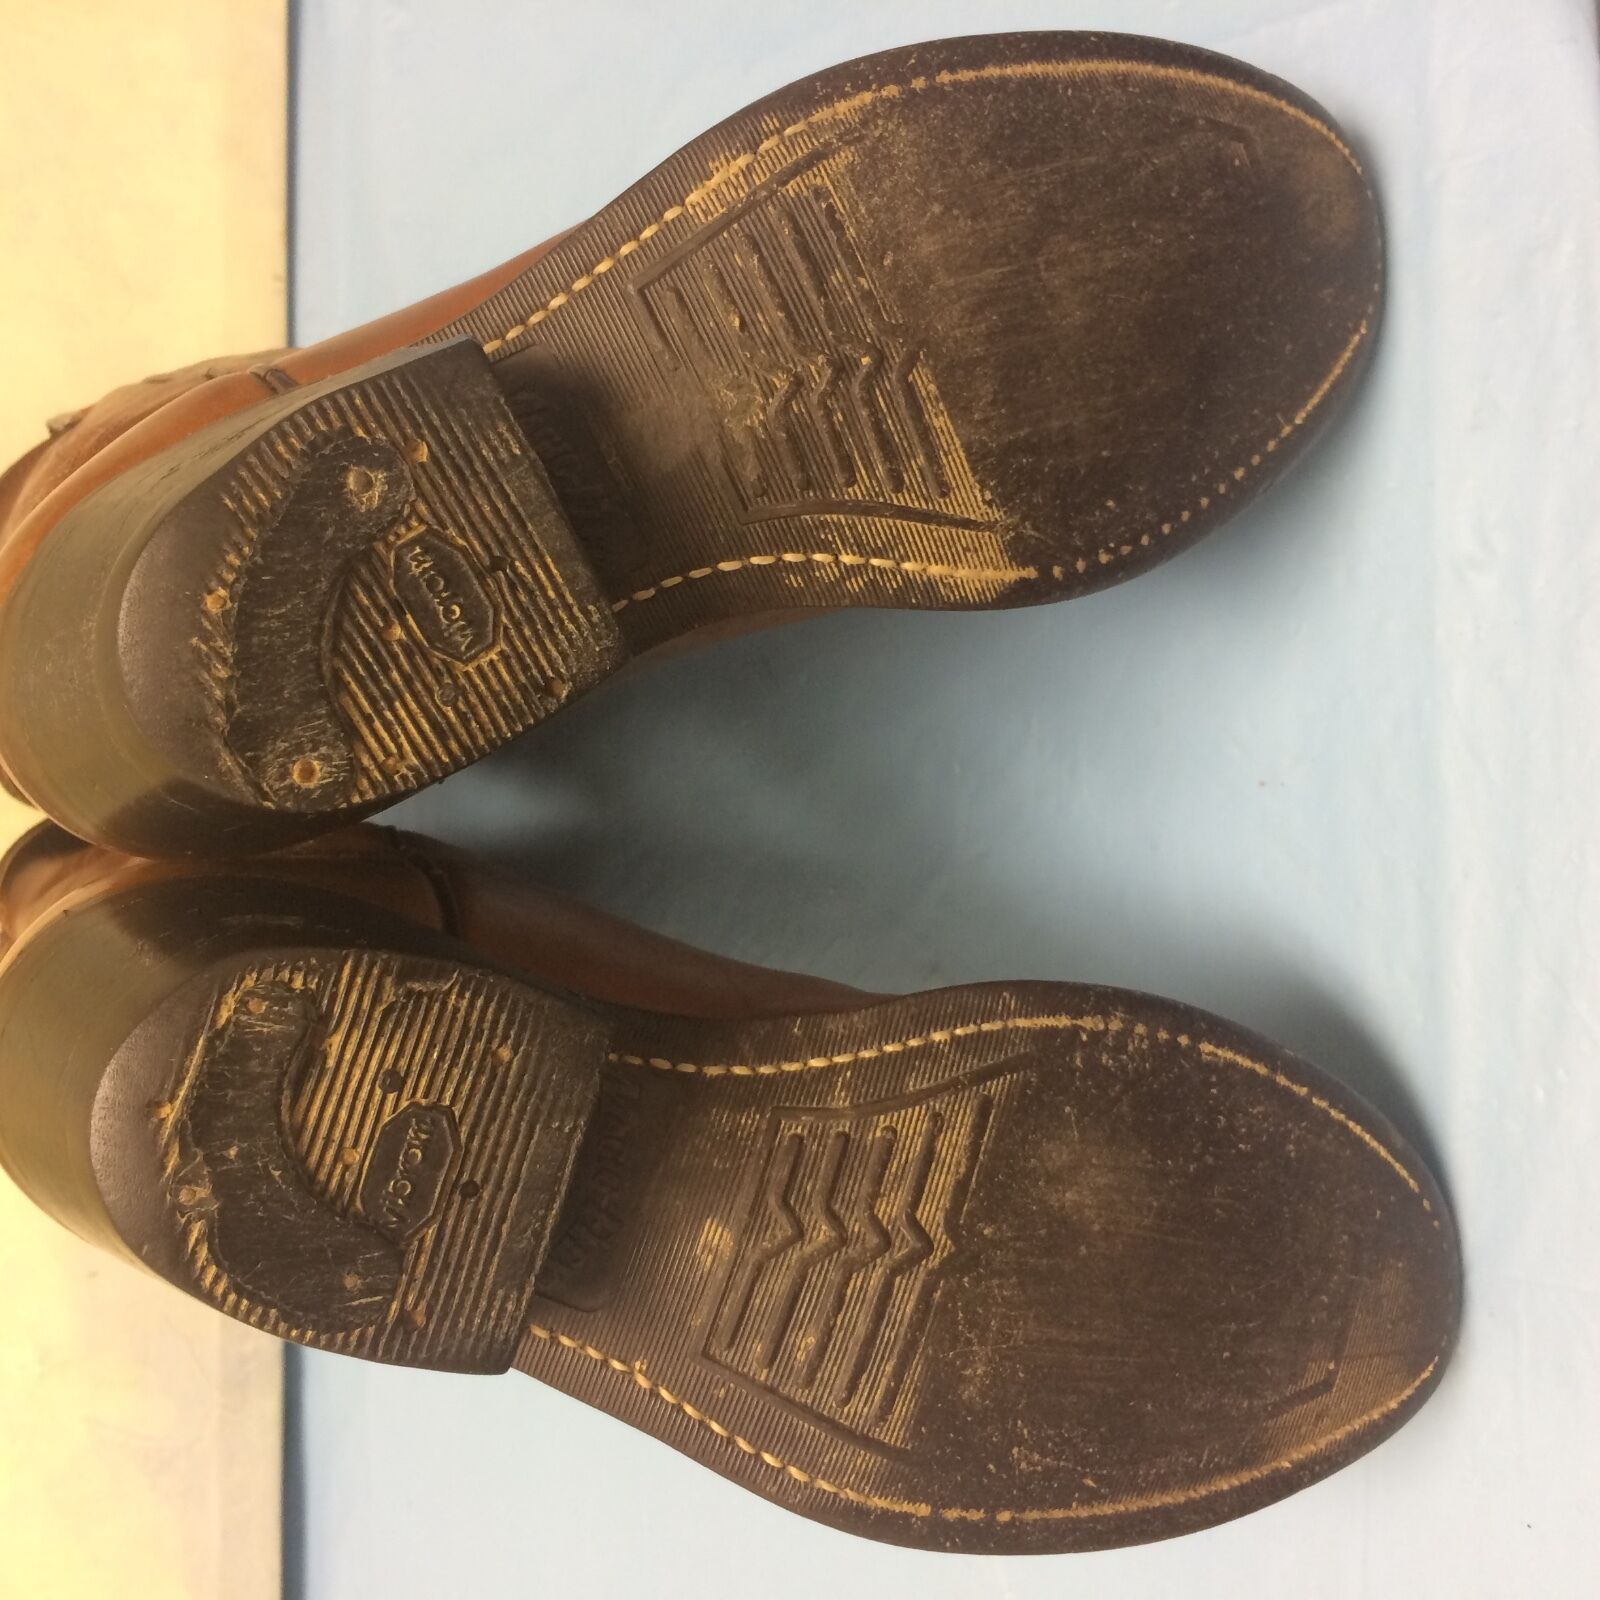 TEXAS Brand Brown Pelle Tall Heel Western Cowboy Stivali Style Size 6.5 M Style Stivali 8201 ea25a6